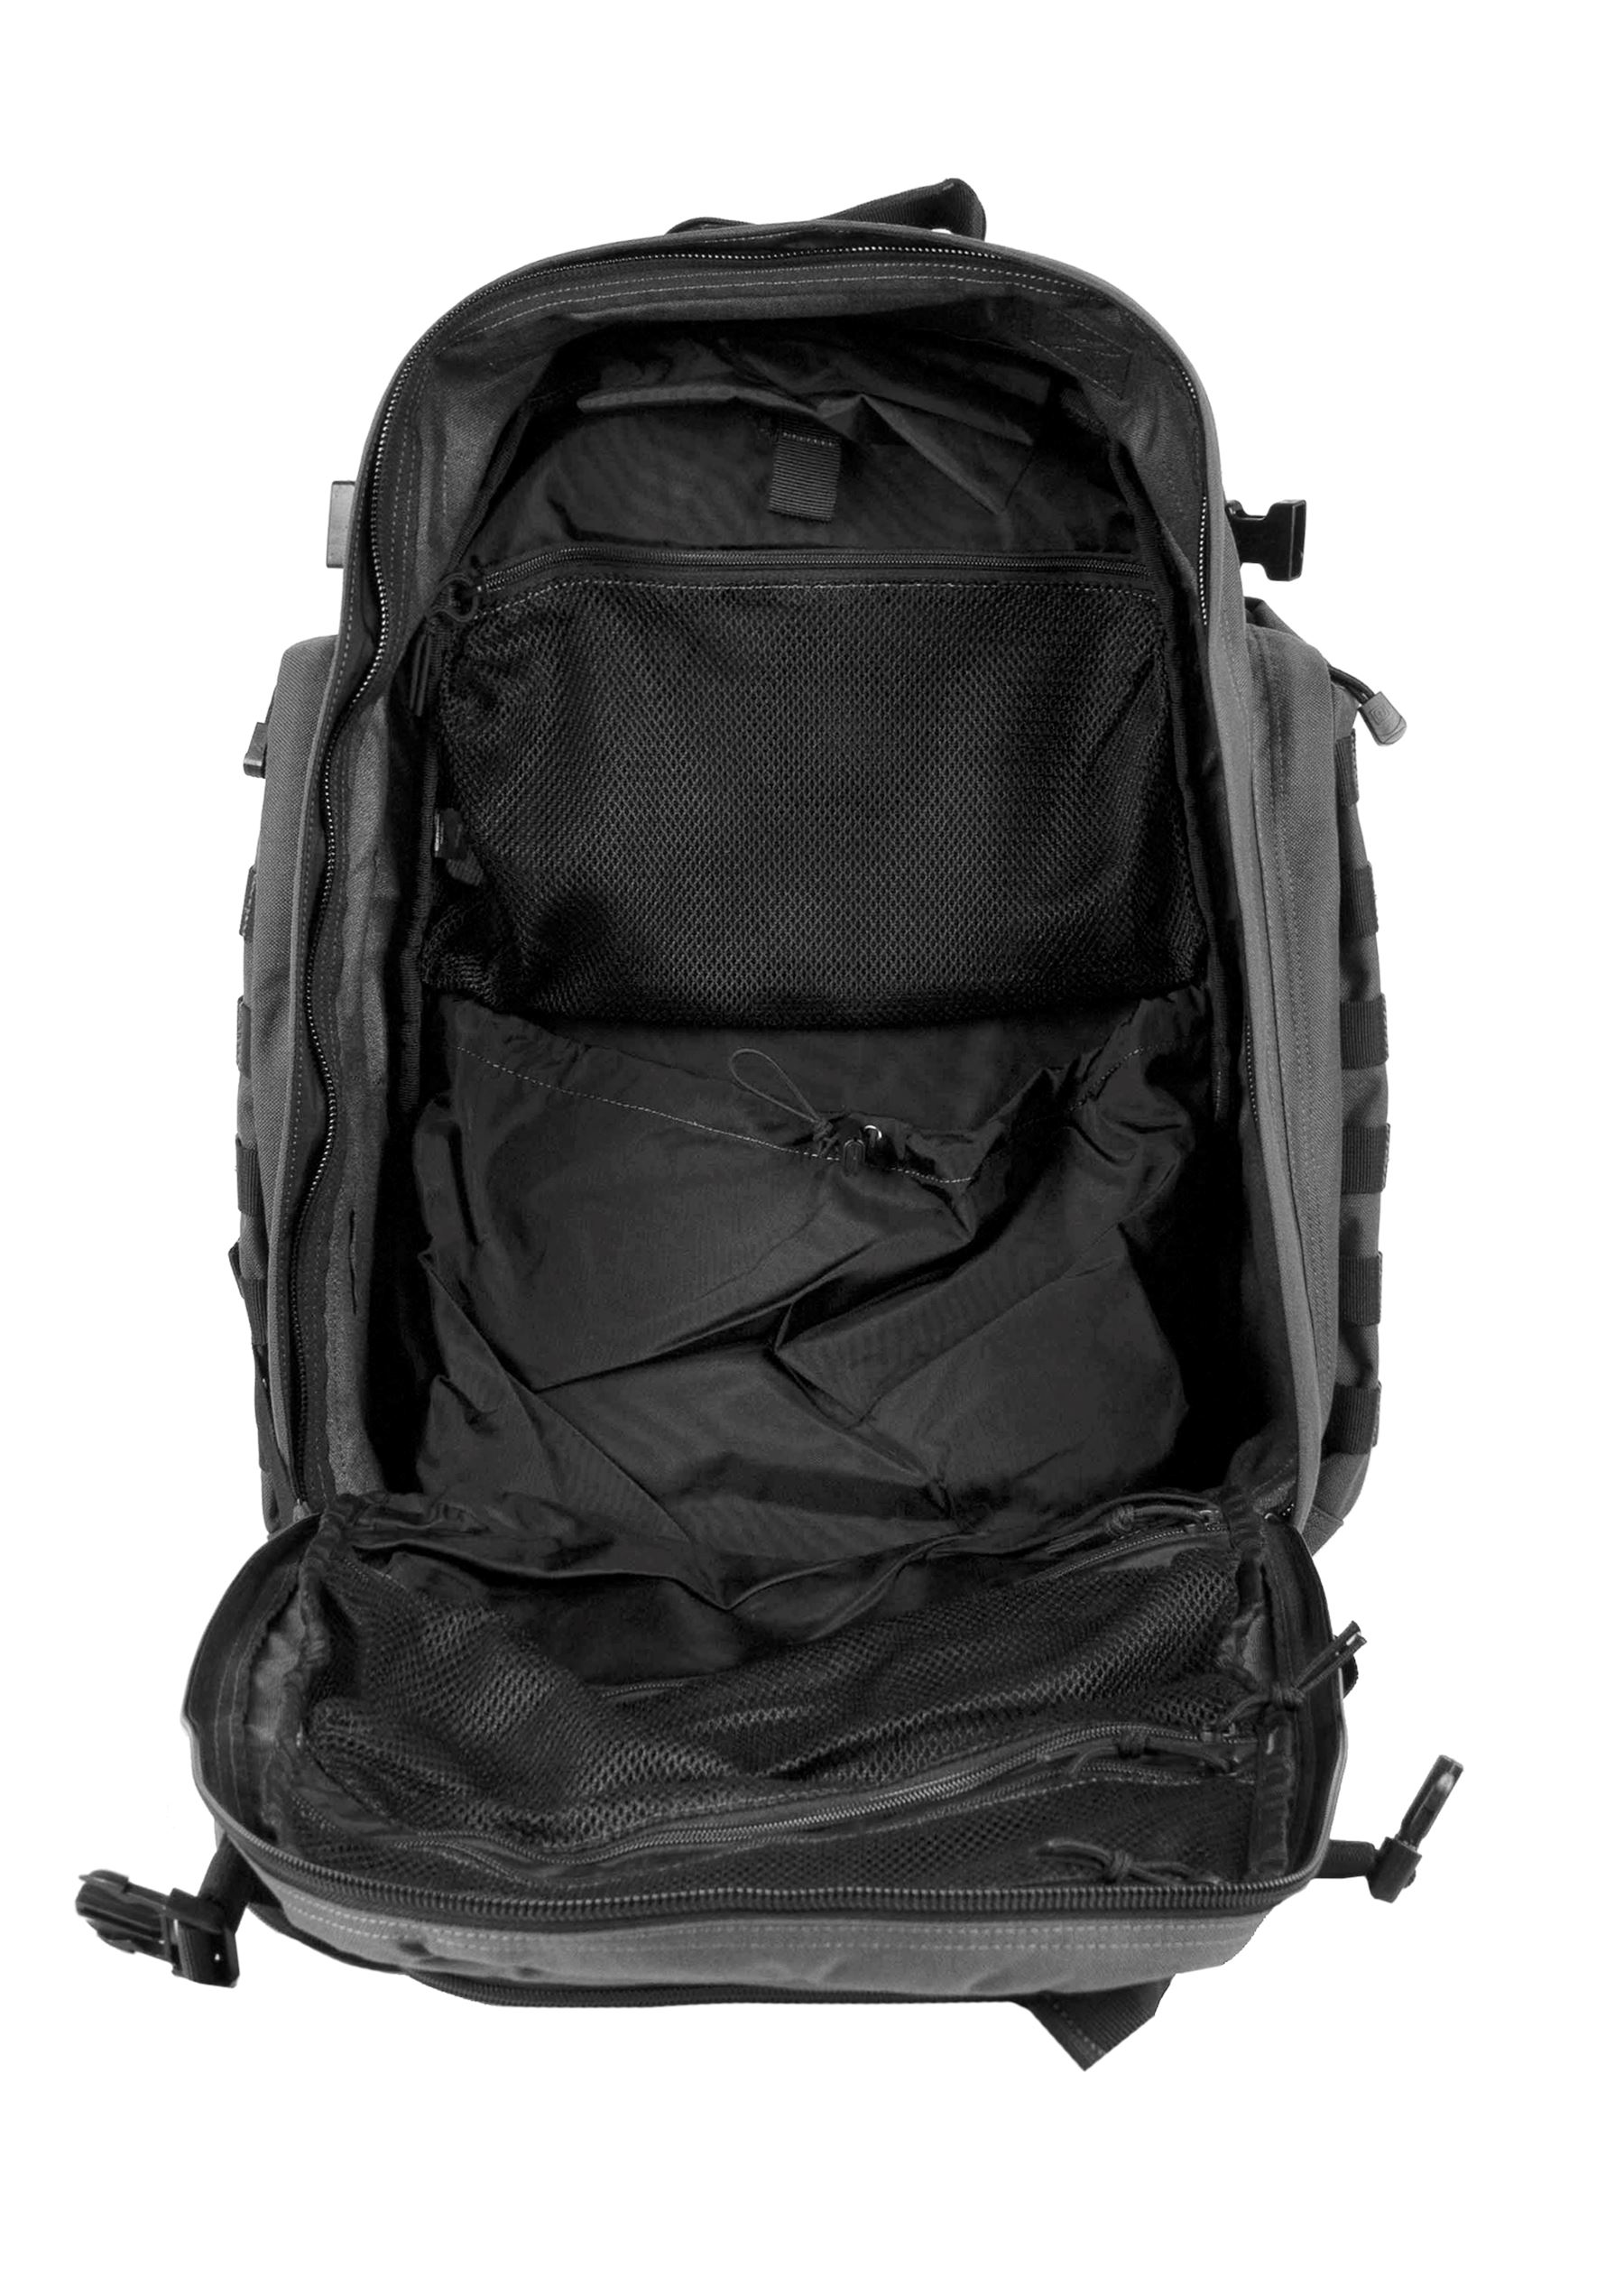 5.11 Tactical backpack på 43 liter.